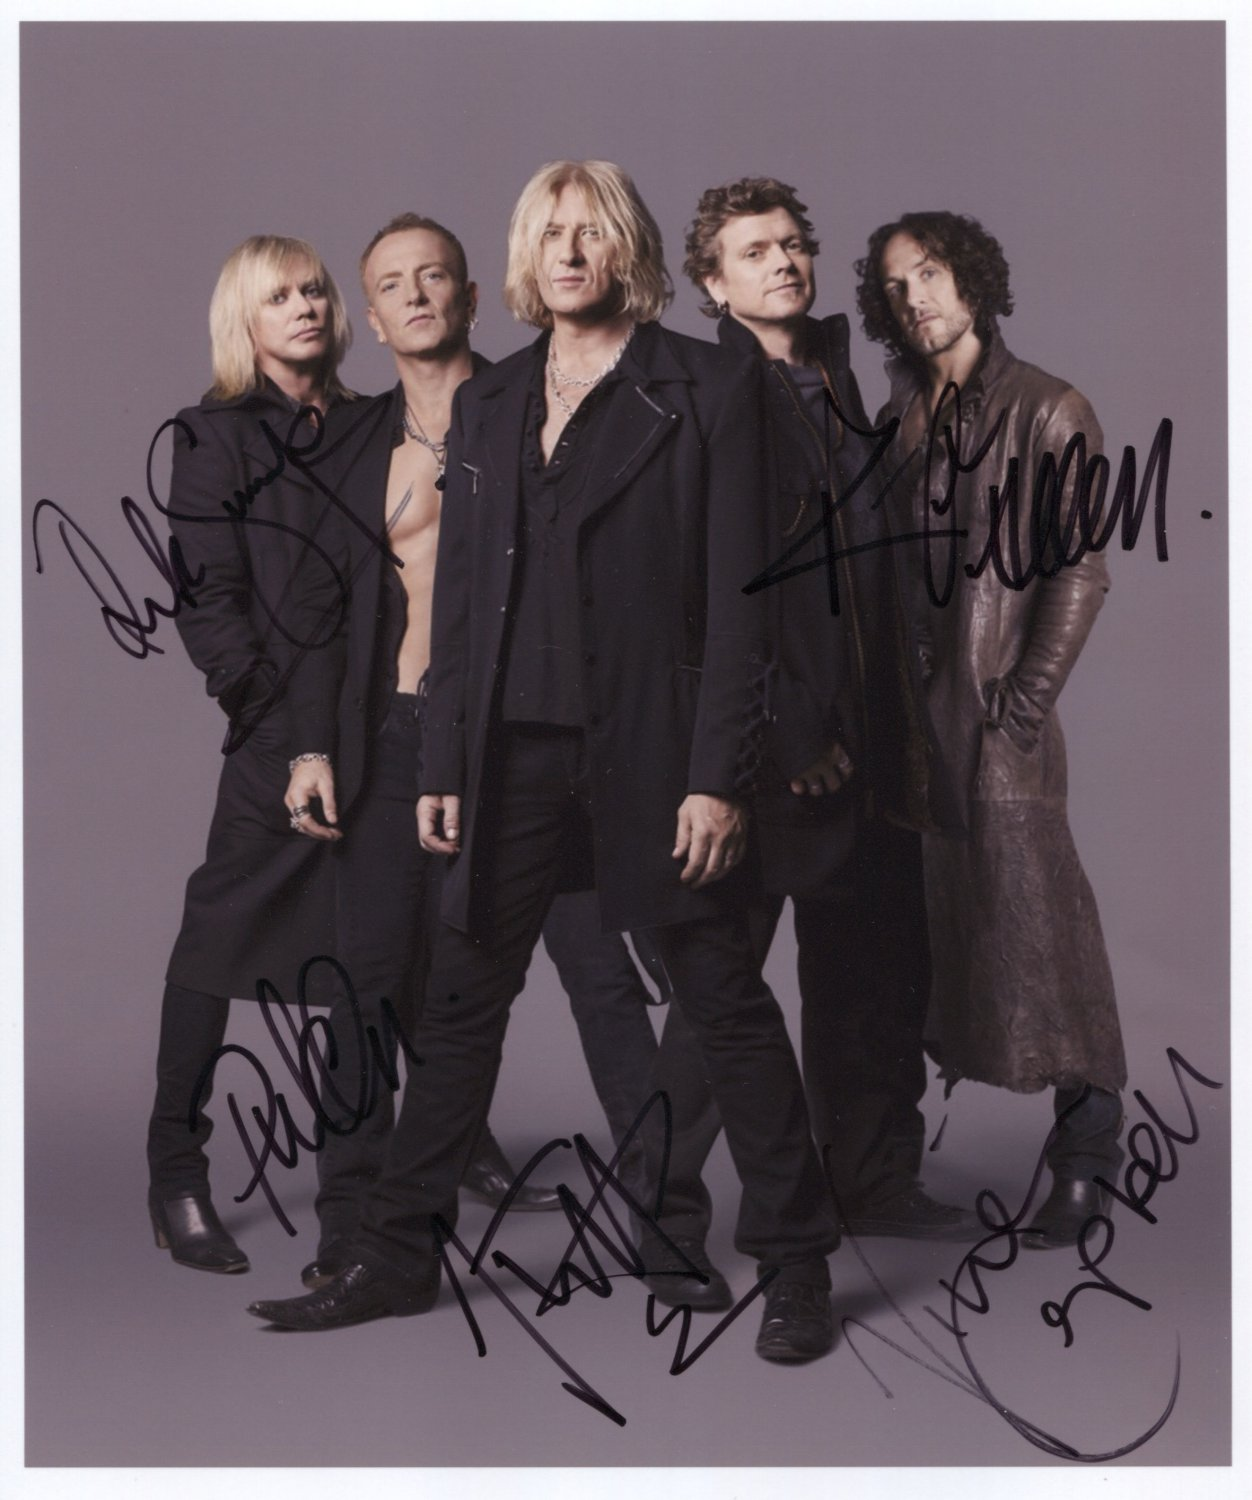 """Def Leppard FULLY SIGNED 8"""" x 10"""" Photo + Certificate Of Authentication 100% Genuine"""